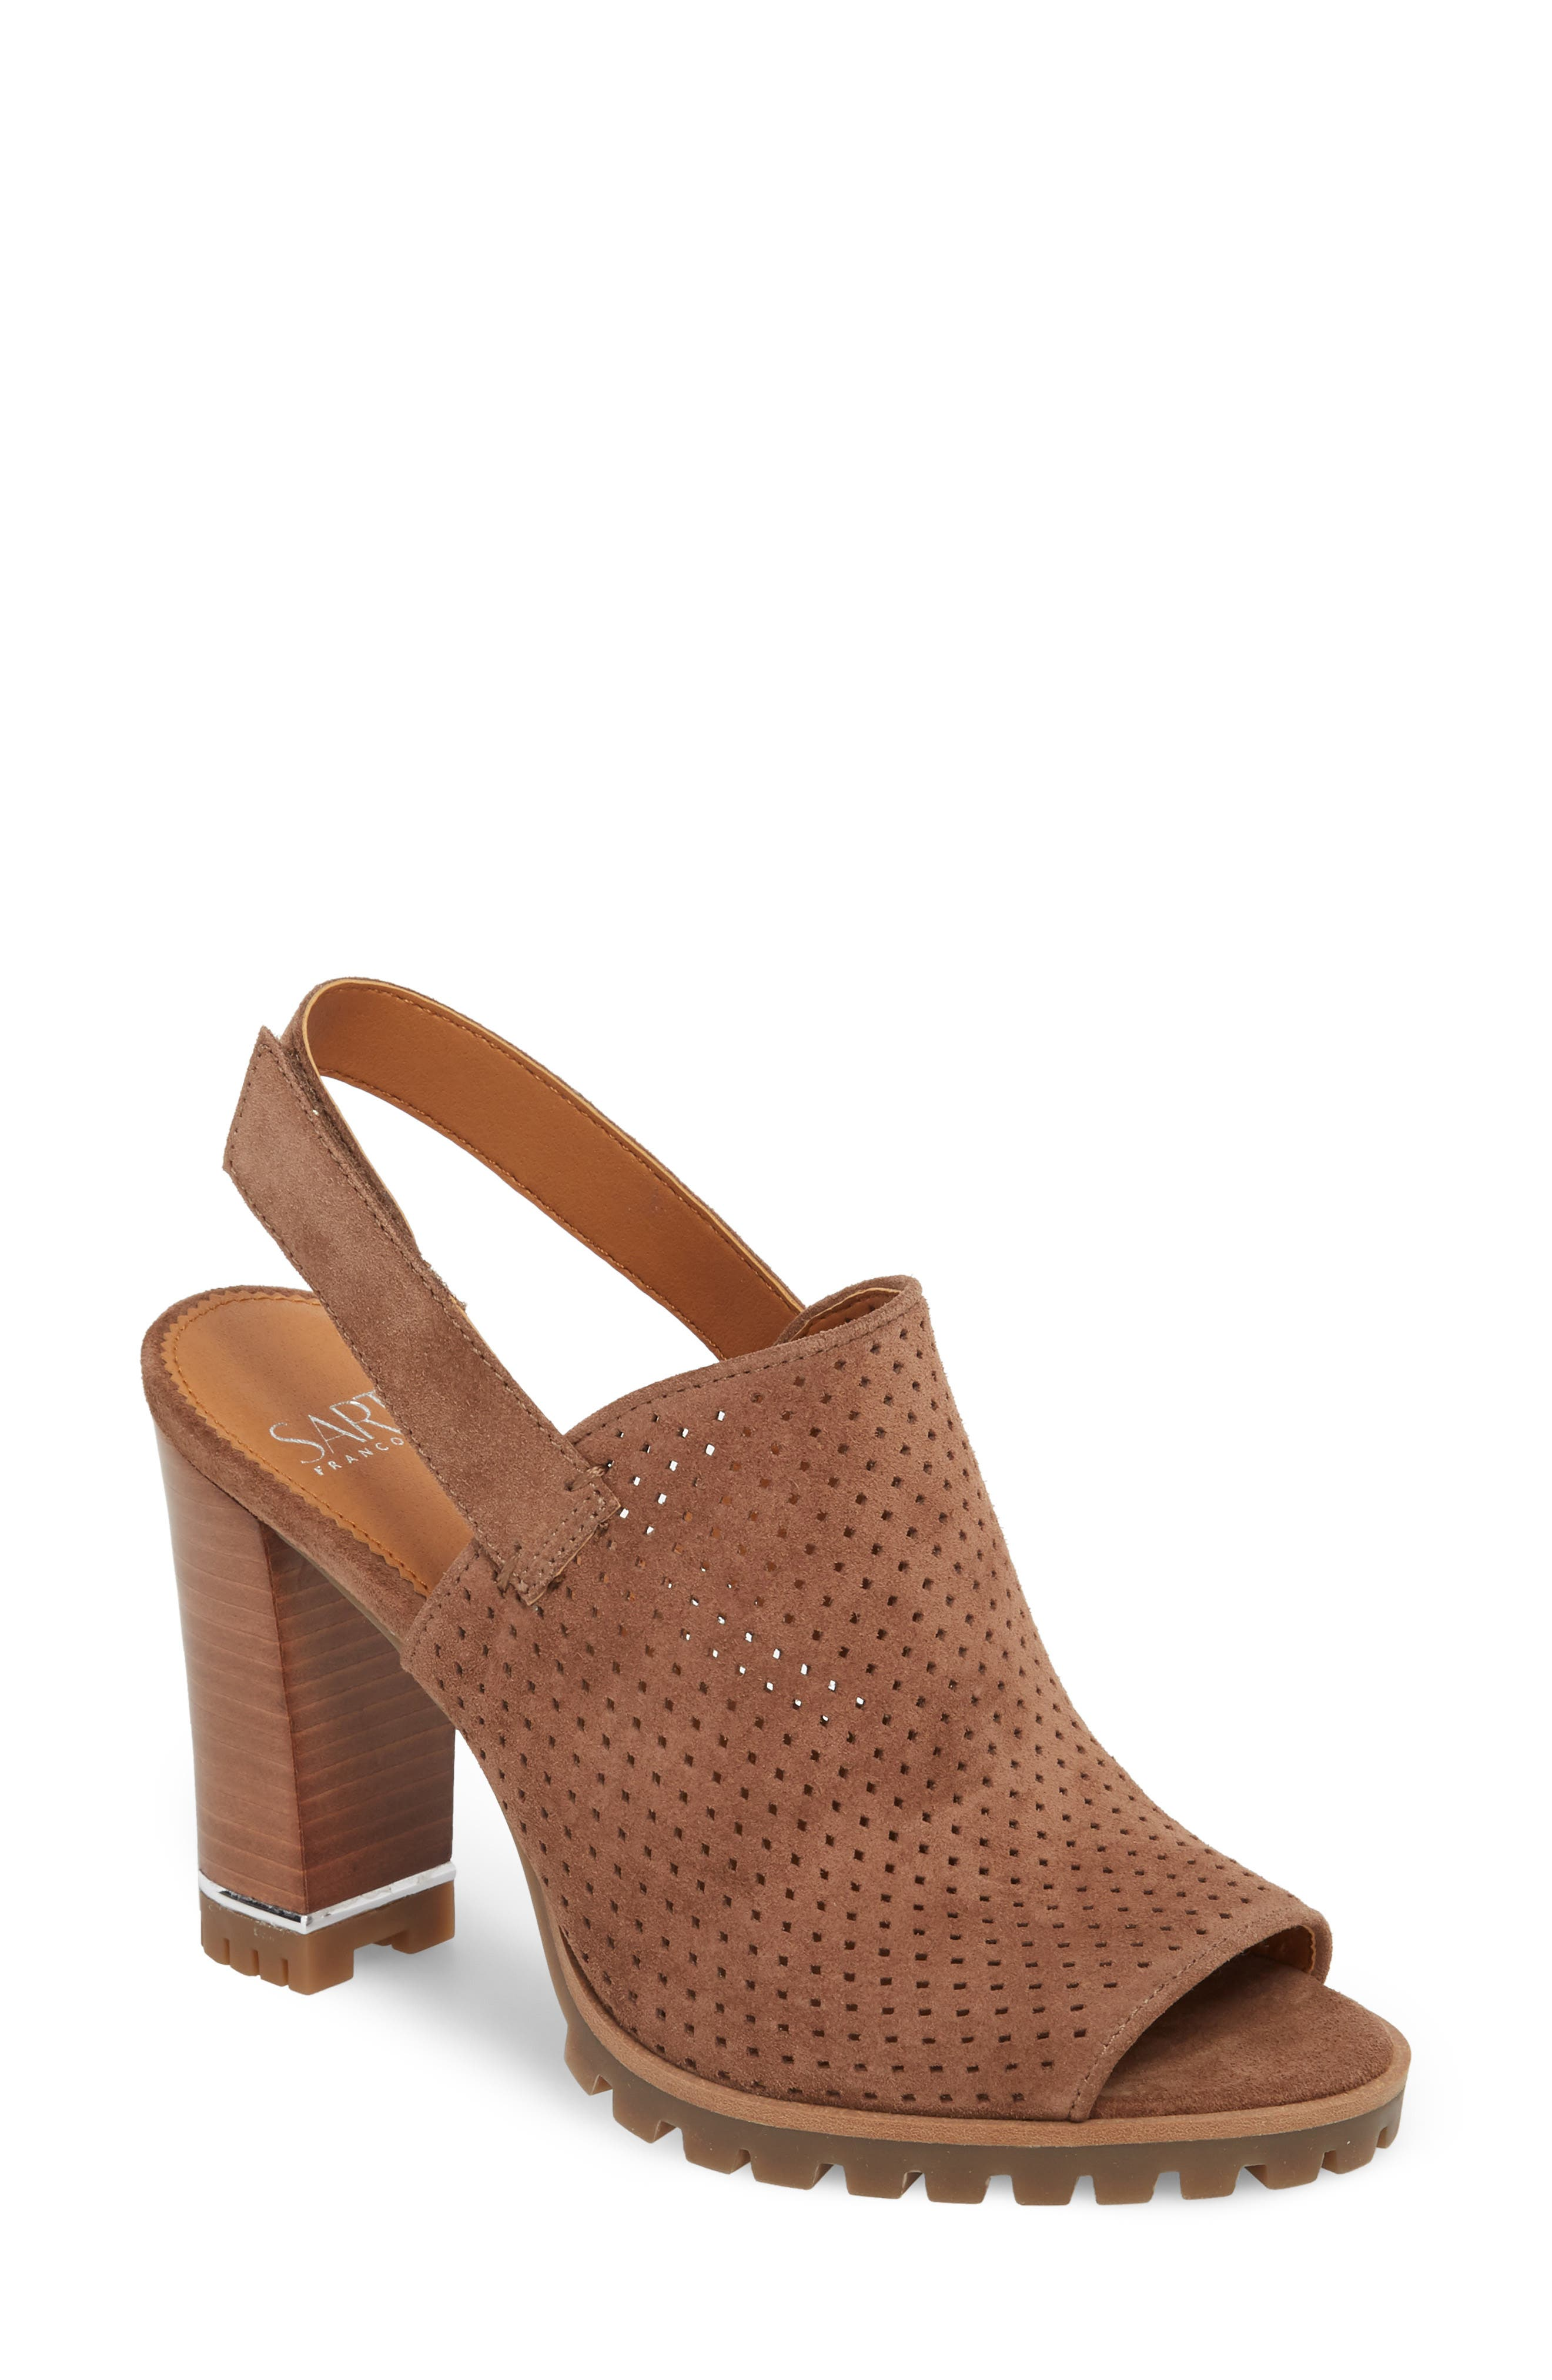 Analise Sandal,                             Main thumbnail 1, color,                             Toffee Suede